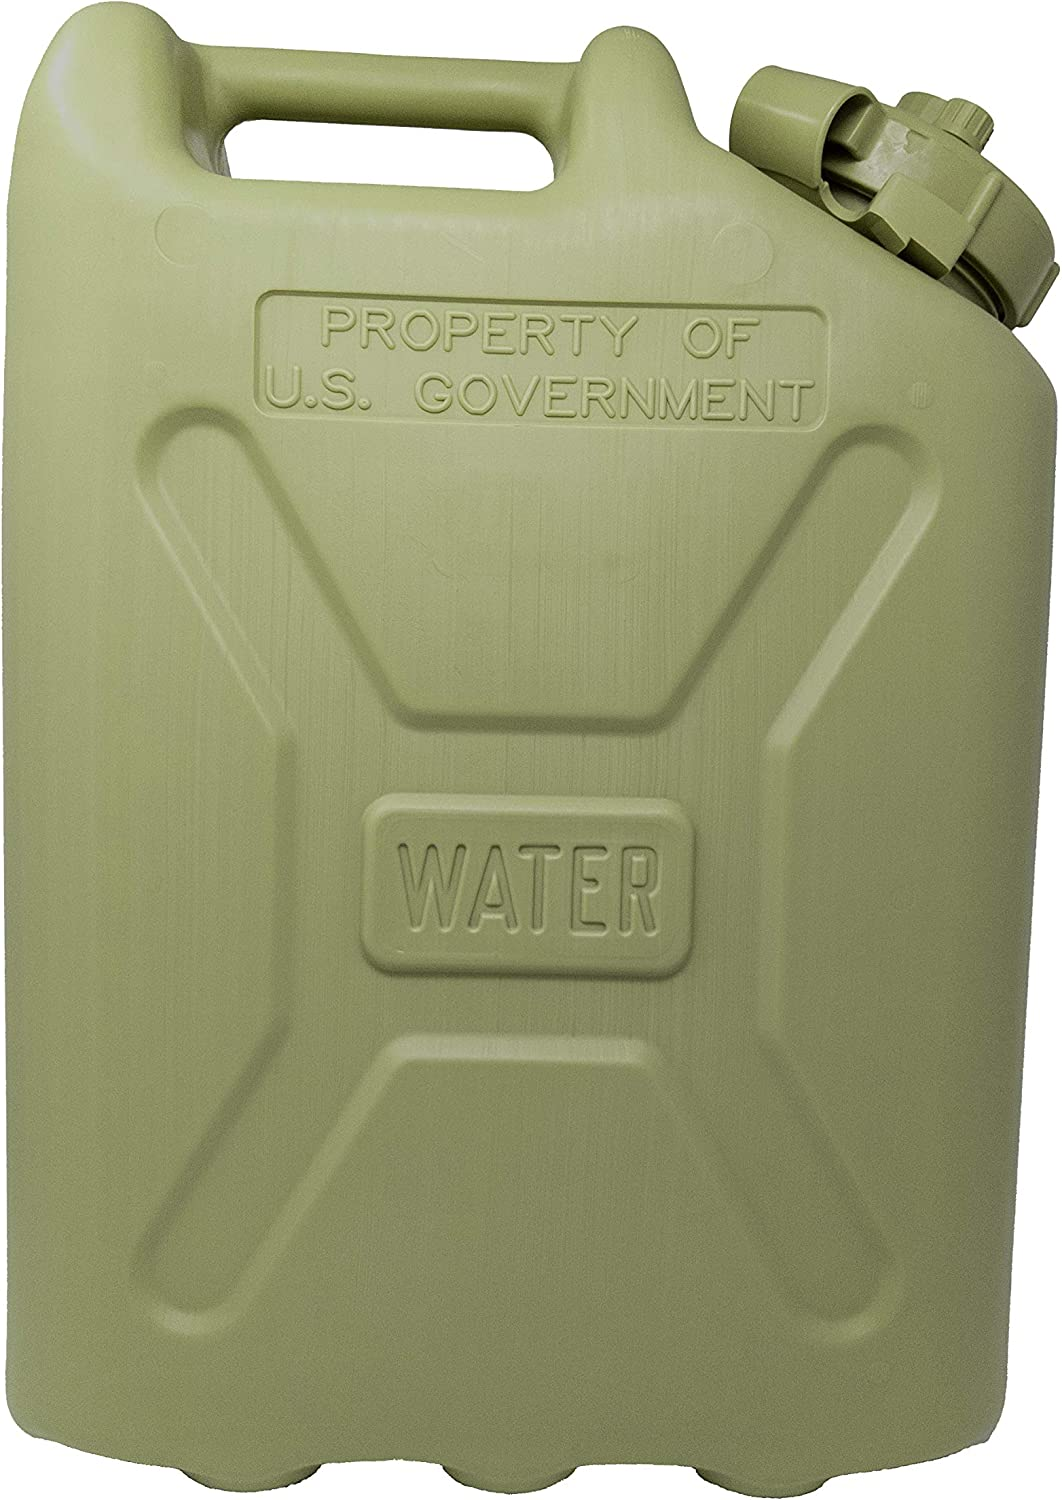 Tacticai 5-Gallon Water Jug Potable Storage Container with Lid, Portable Heavy-Duty Military Grade BPA Free Plastic for Camping, Survival, Emergency, Sports, or Outdoor Use